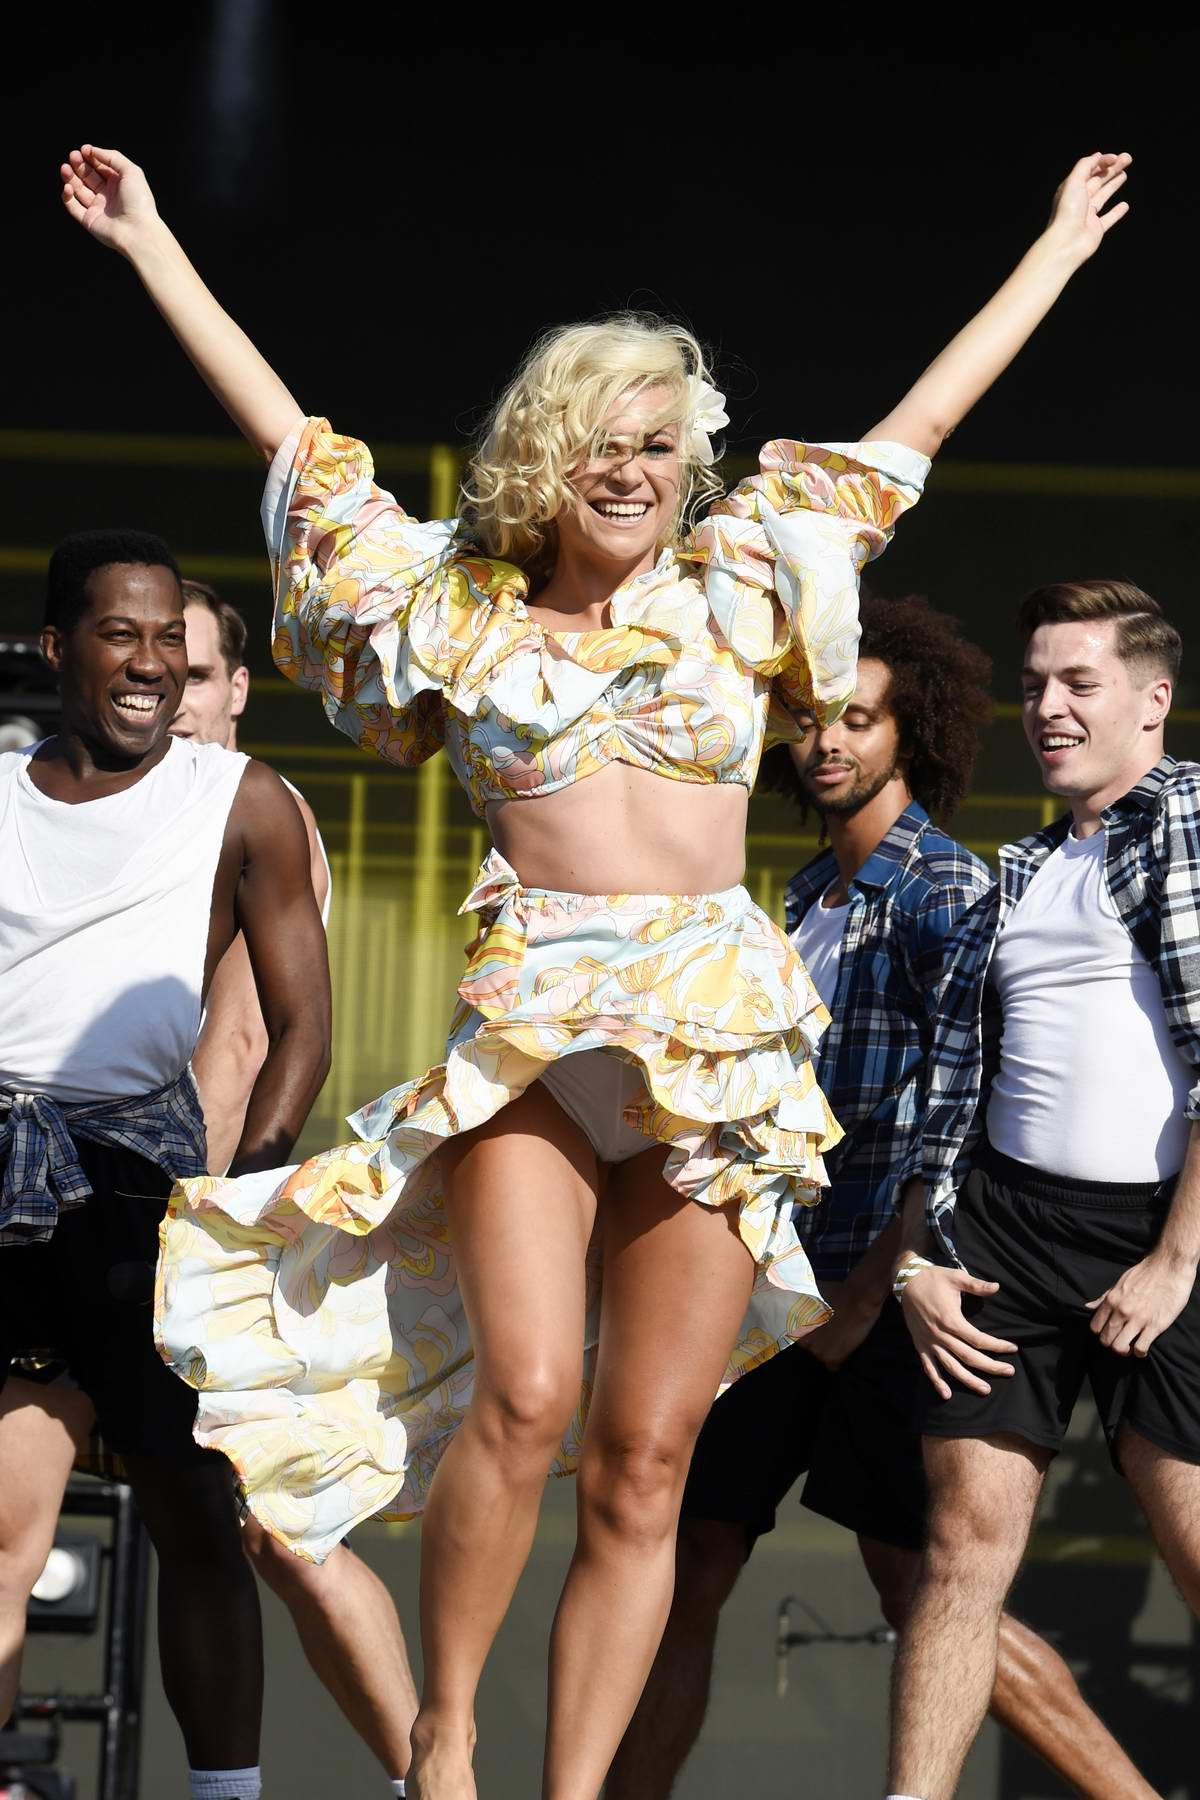 Pixie Lott performs on stage at 2019 Manchester Pride Festival in Manchester, UK